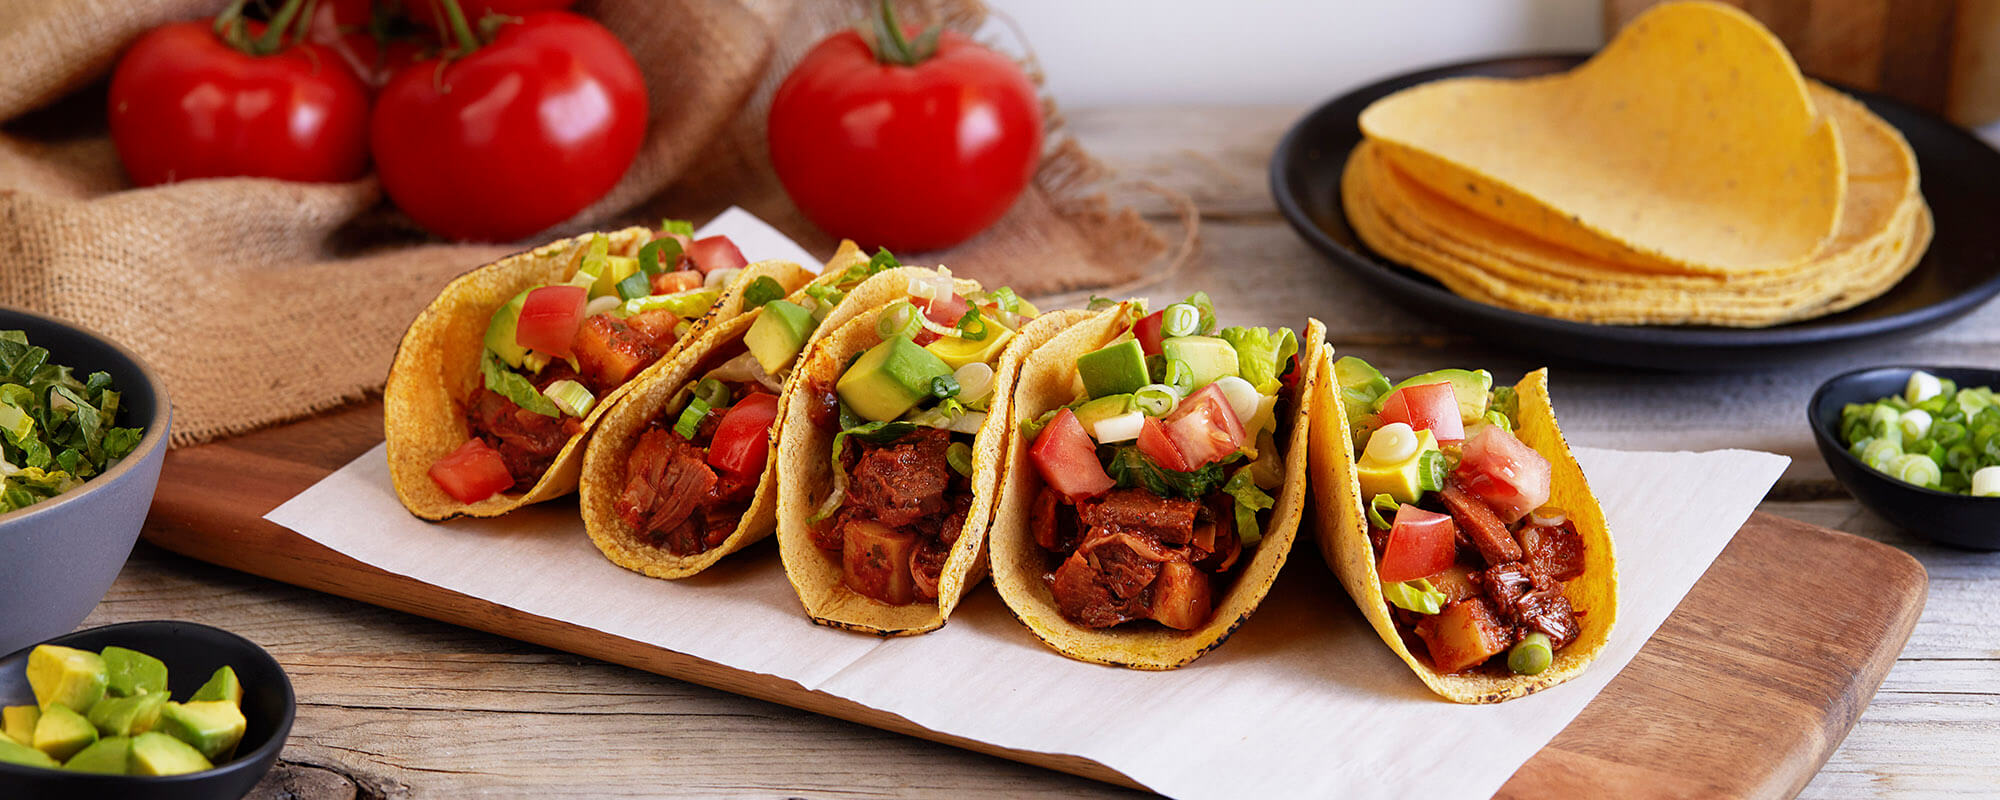 Chipotle Jackfruit Taco Recipe Forks Over Knives Recipe Jackfruit Tacos Jackfruit Recipes Jackfruit